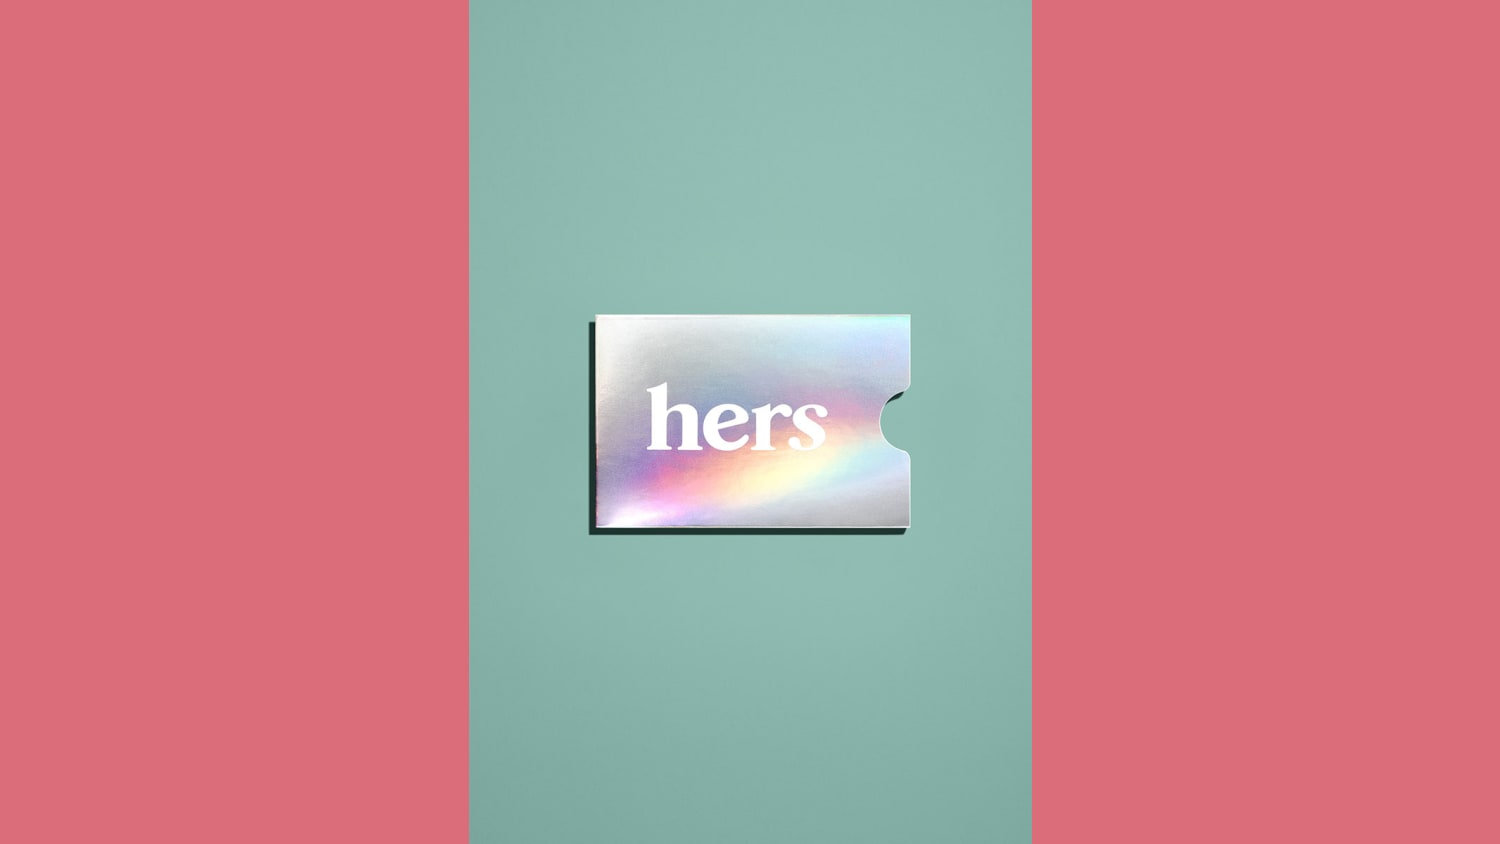 WEB hers